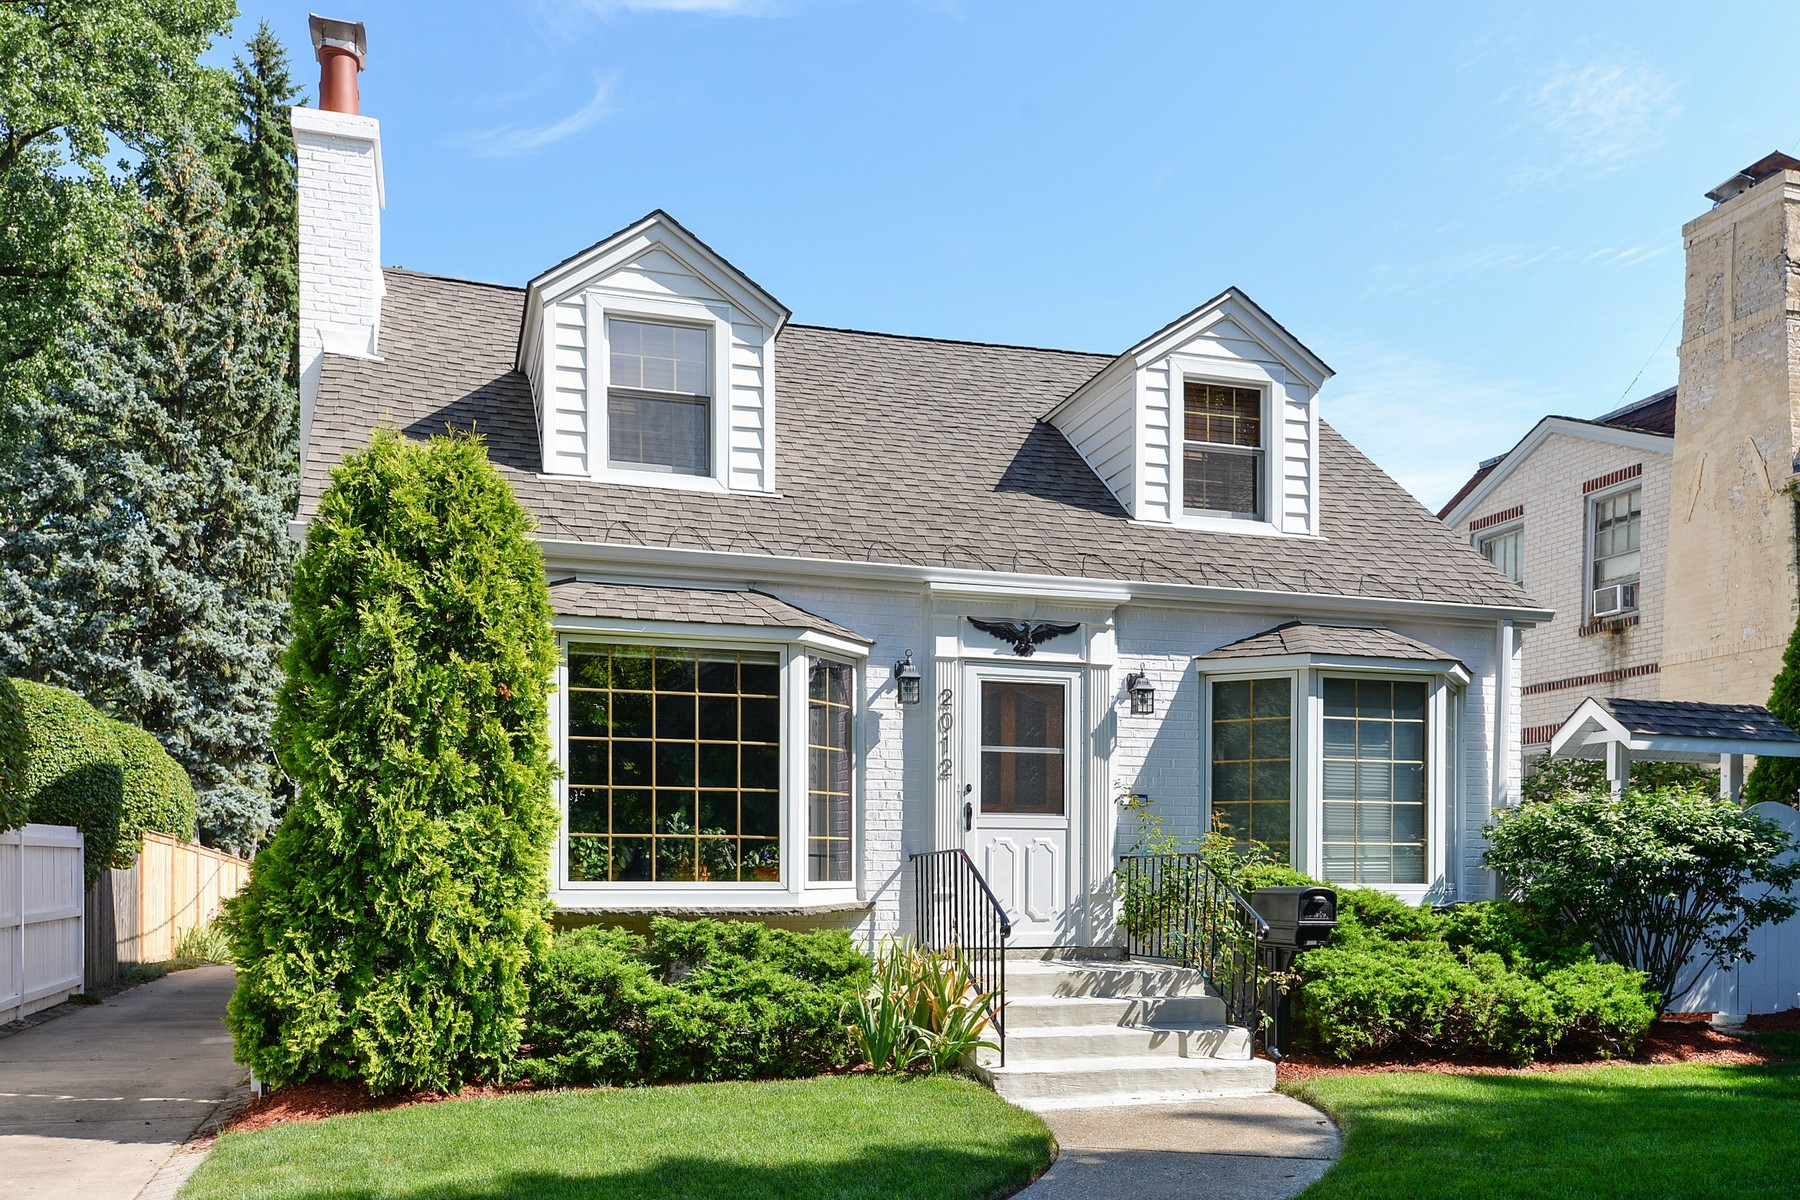 Single Family Home for Sale at Classic Cape Cod With True Storybook Charm 2012 Central Avenue Wilmette, Illinois, 60091 United States